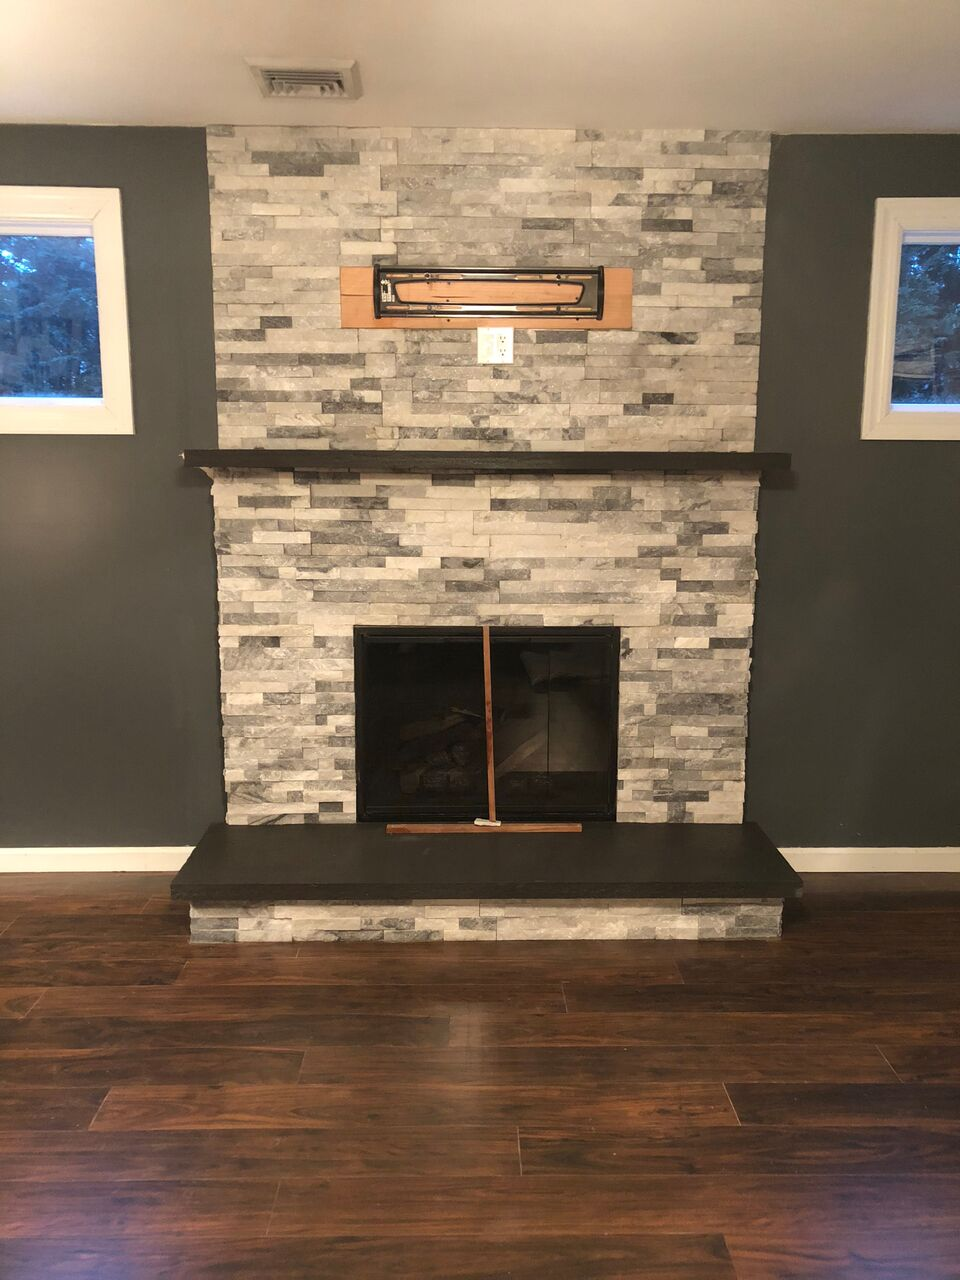 3 Types of Interior Masonry Fireplace Materials and Their Benefits